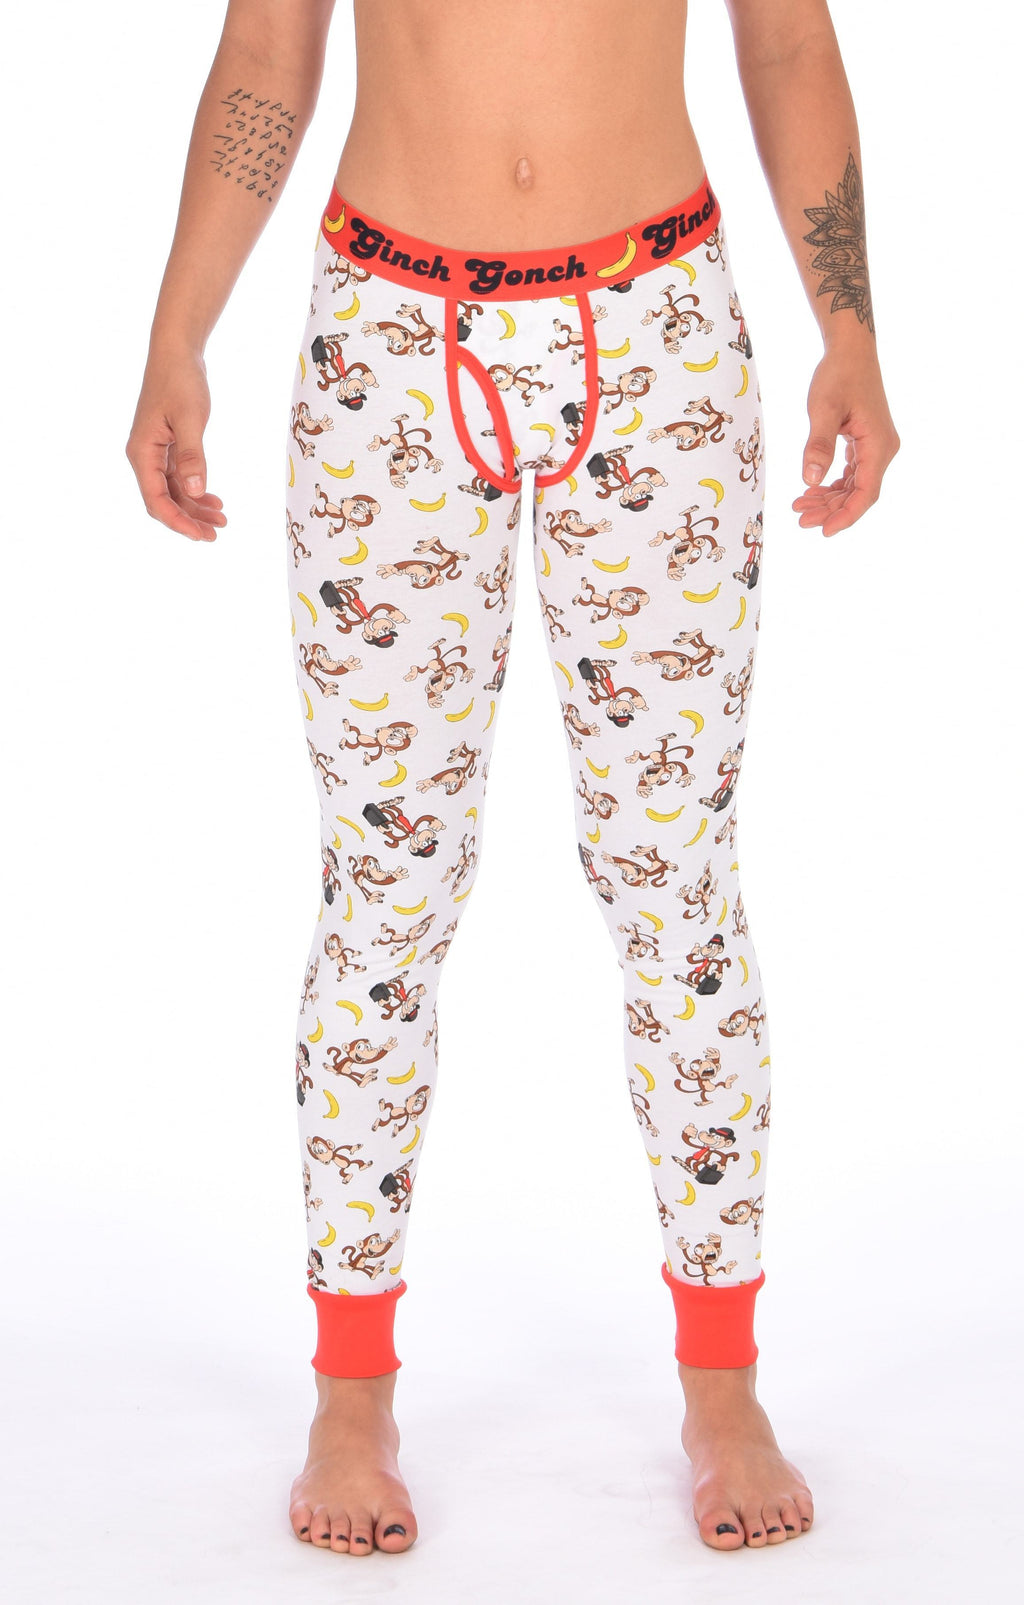 GG Ginch Gonch Gone Bananas leggings long johns men's long underwear white fabric with monkeys and bananas red trim and red printed waistband y front